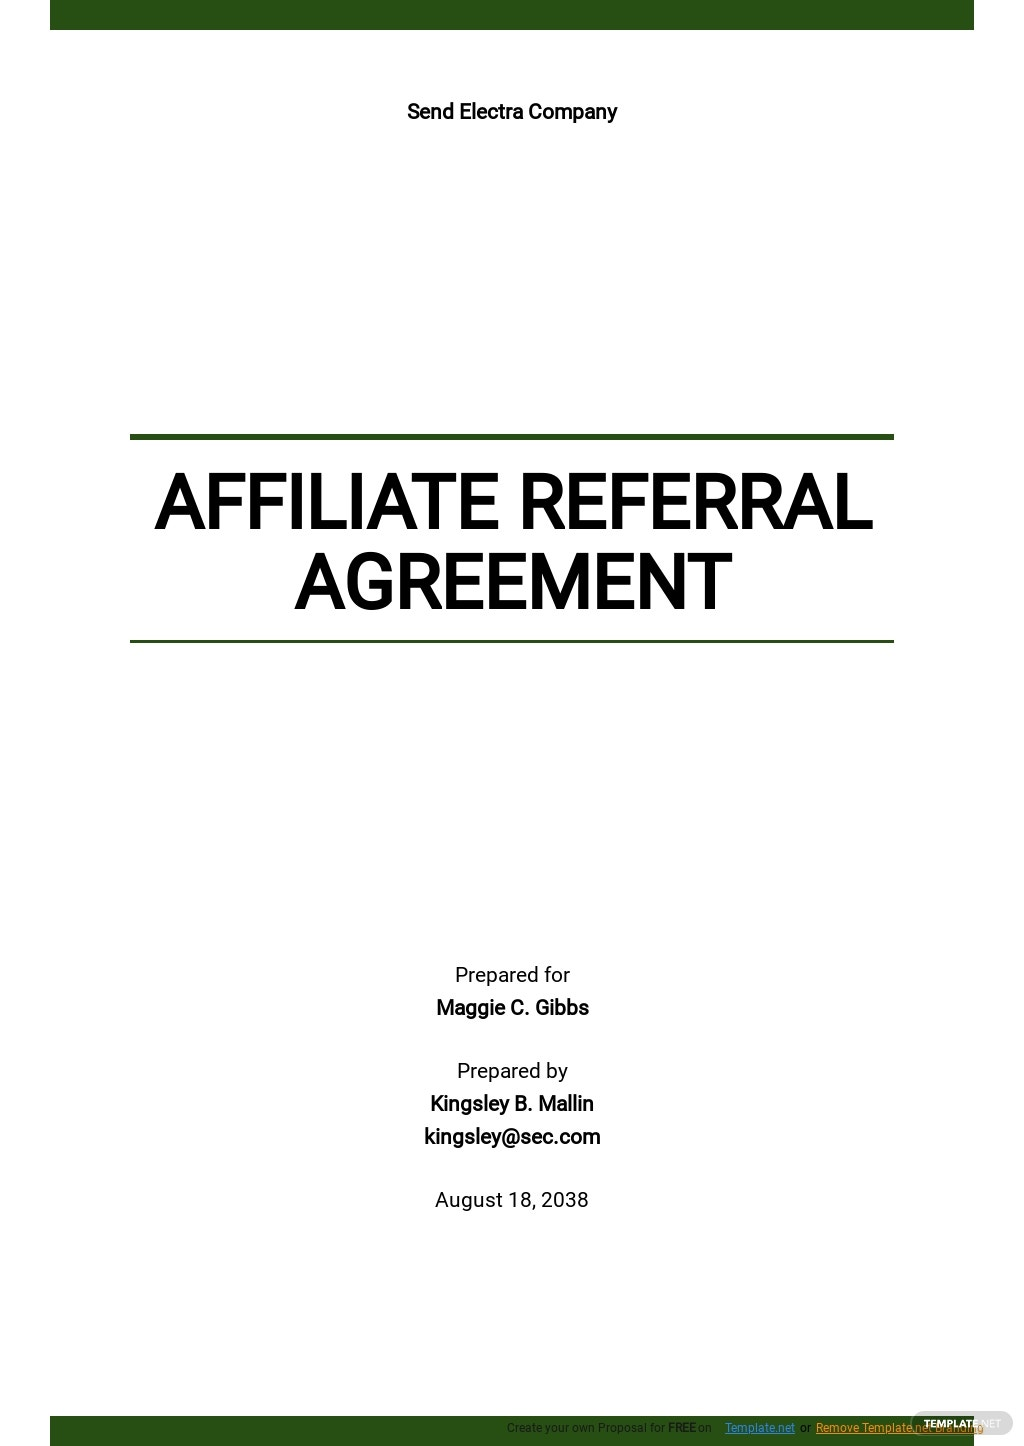 Affiliate Referral Agreement Template.jpe